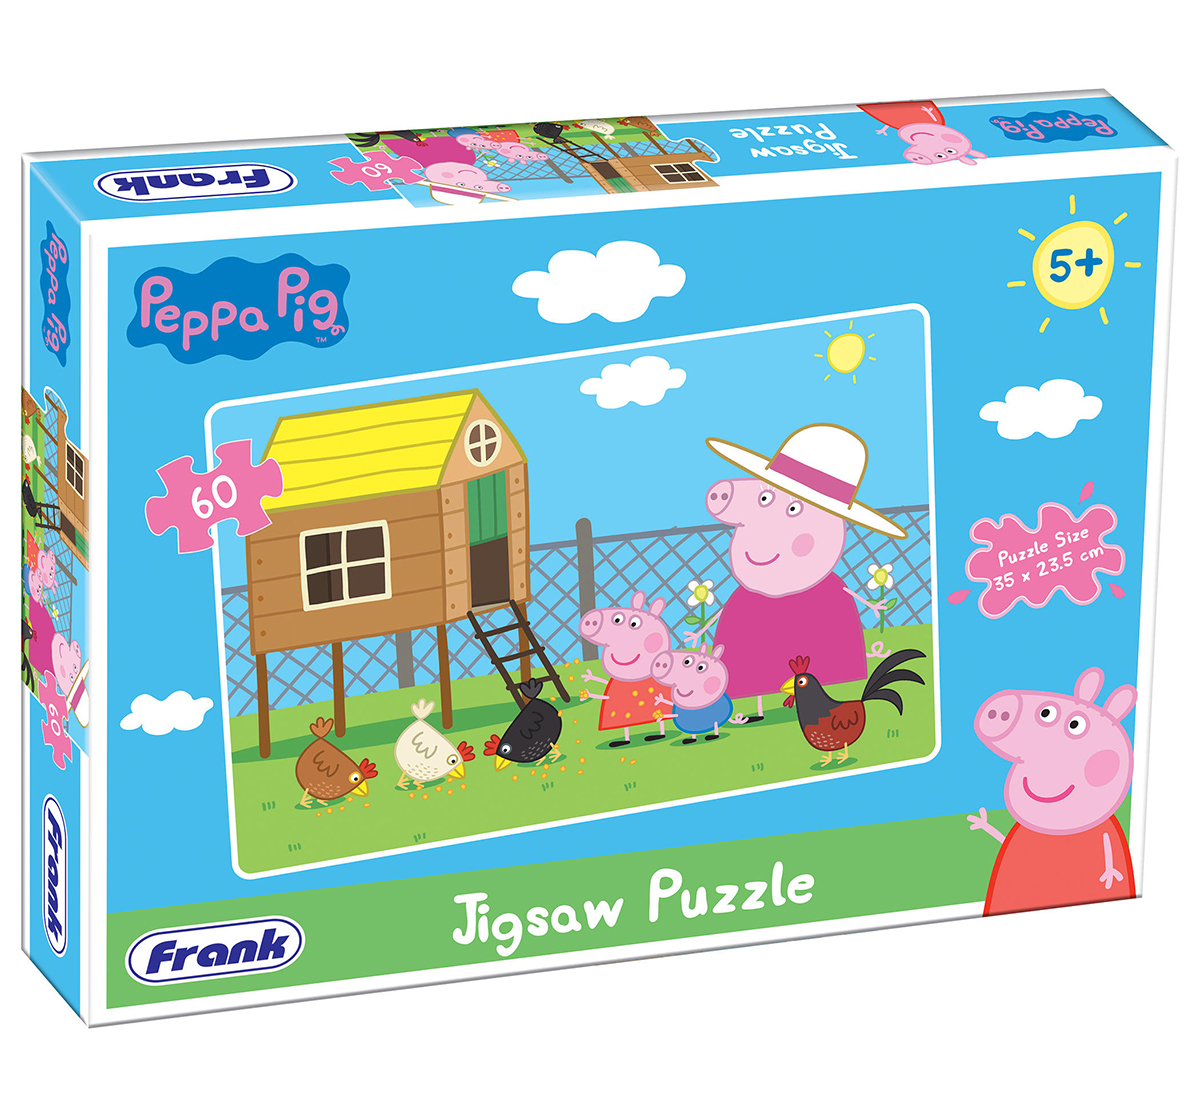 Frank | Frank Peppa Pig 60 Pcs Puzzle Puzzles for Kids age 5Y+